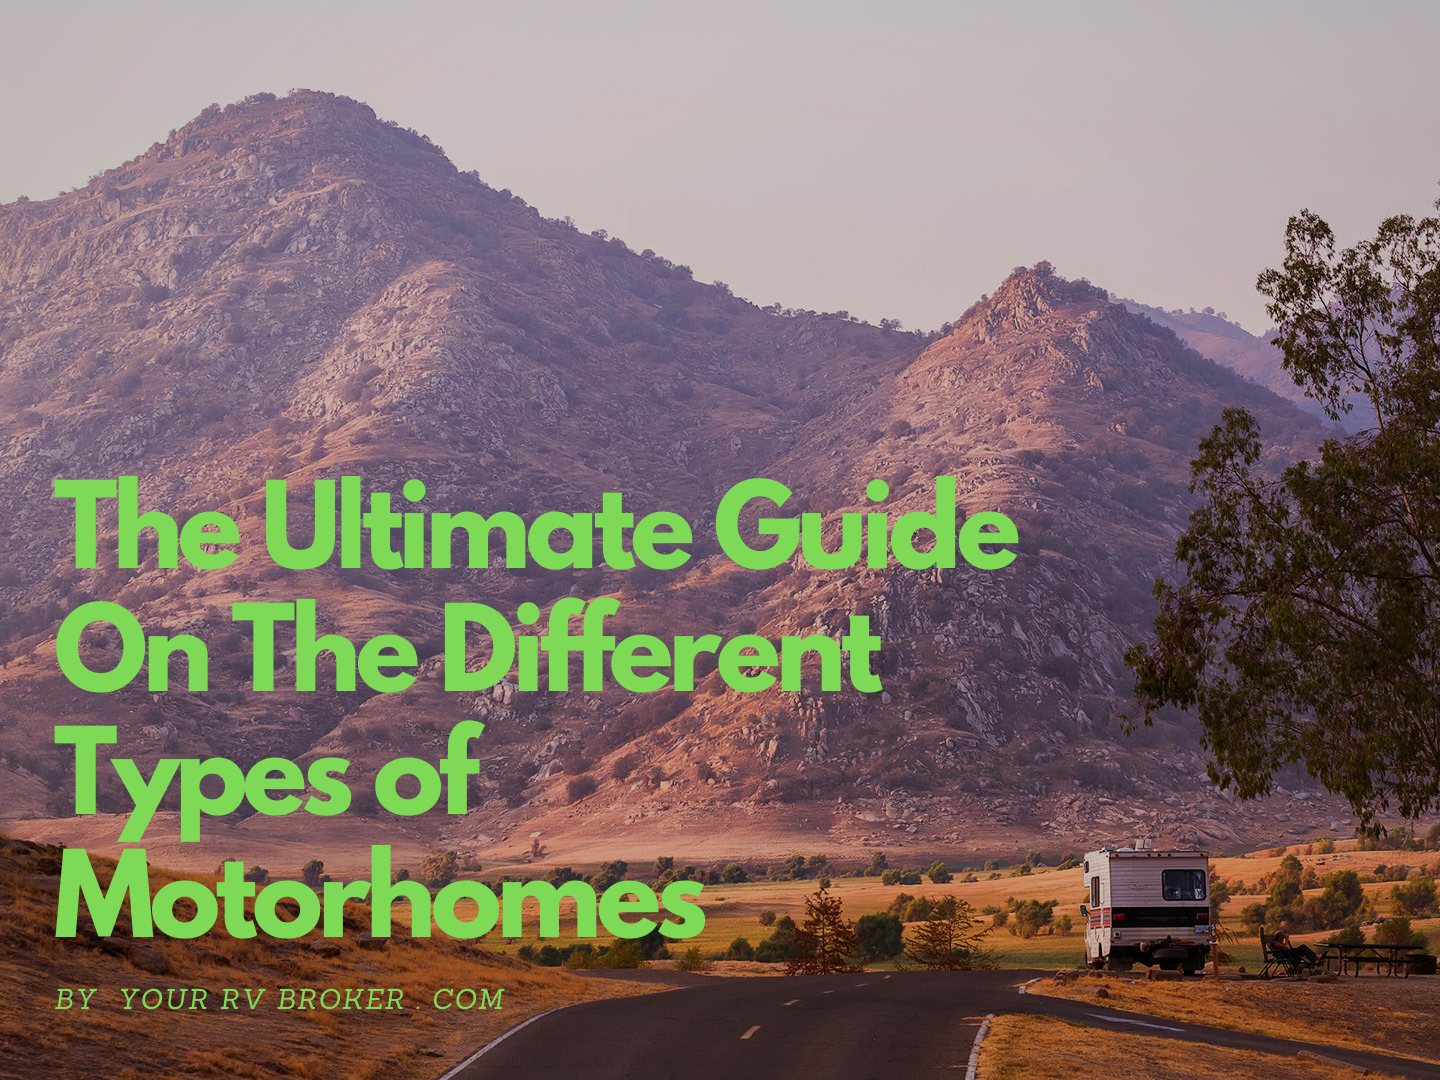 The Ultimate Guide On The Different Types of Motorhomes